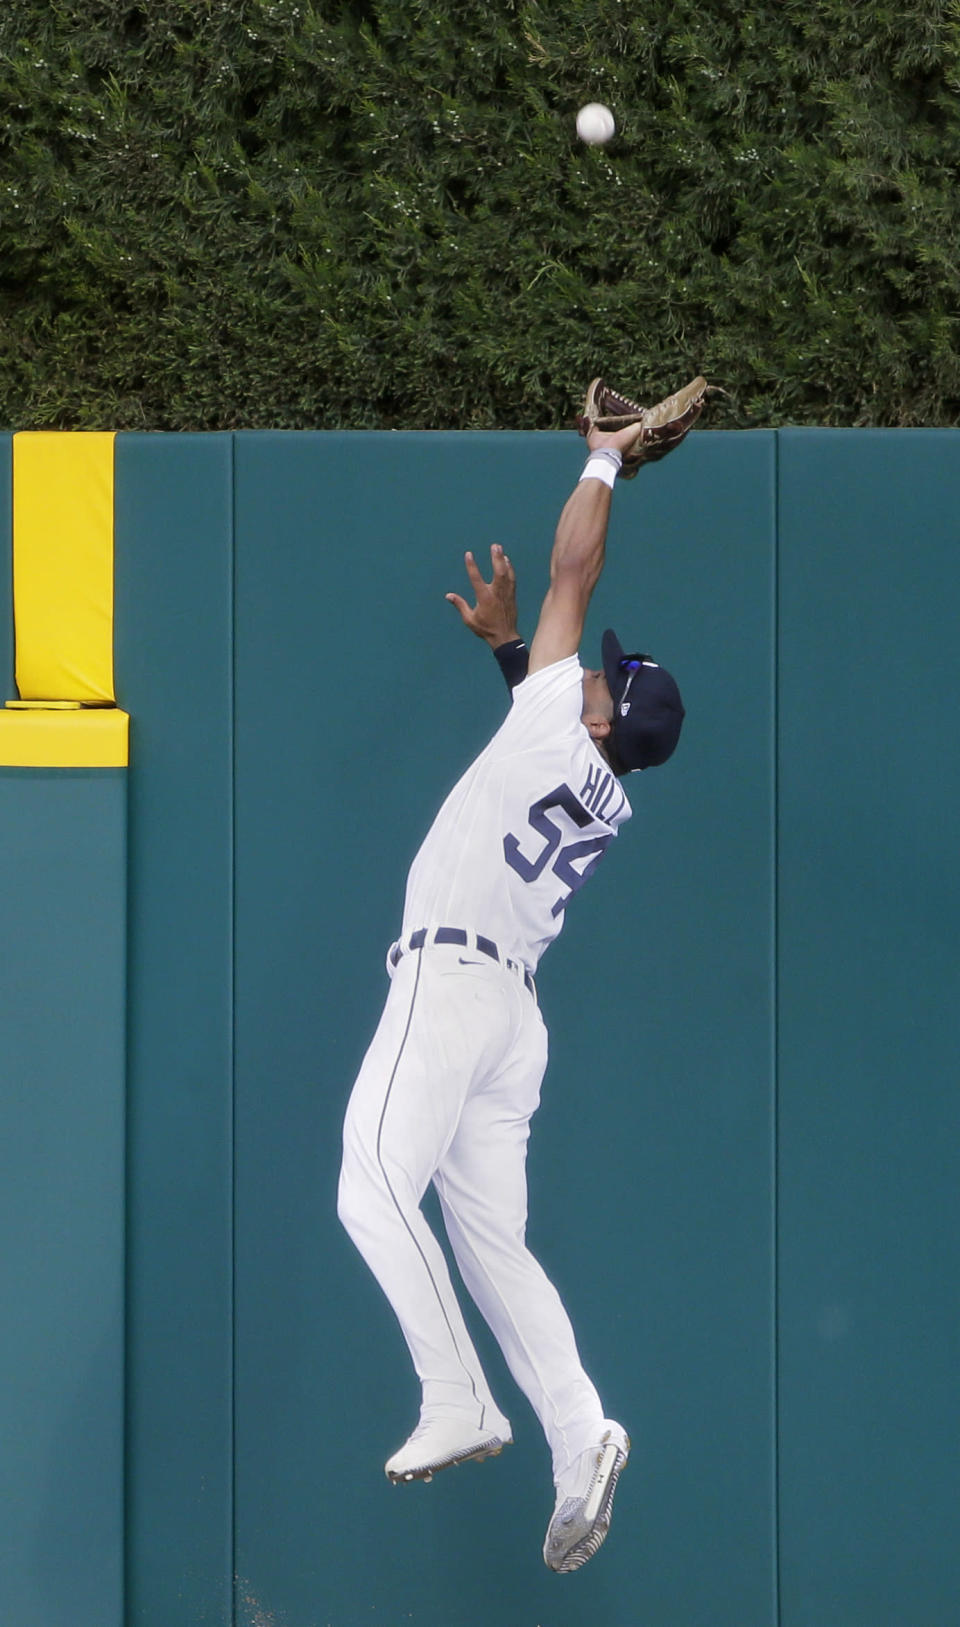 Detroit Tigers center fielder Derek Hill makes a leaping catch of a fly ball hit by Seattle Mariners' Kyle Seager during the first inning of a baseball game Wednesday, June 9, 2021, in Detroit. (AP Photo/Duane Burleson)